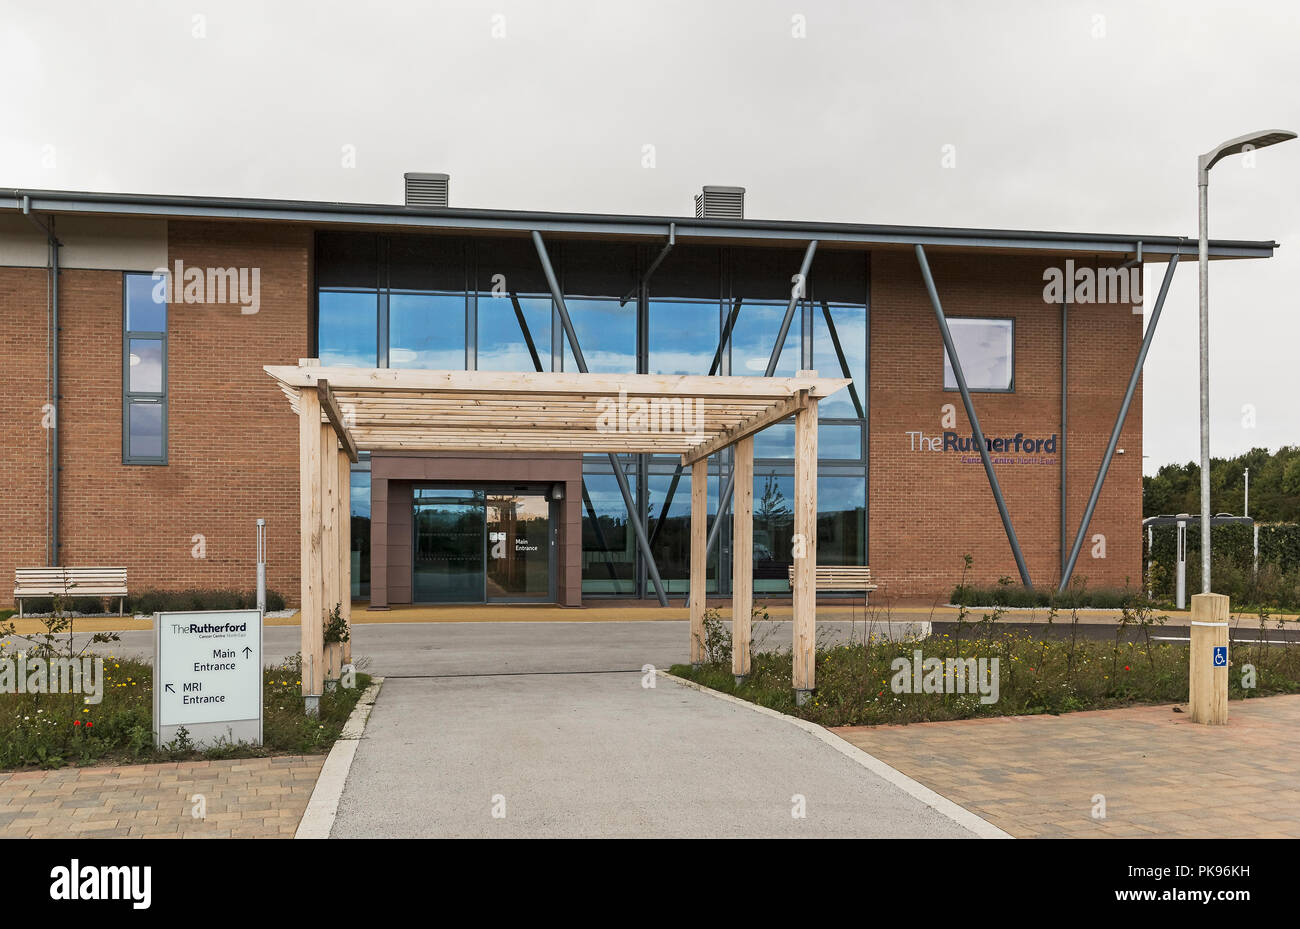 The Rutherford Cancer Centre at Bomarsund, Bedlington, Northumberland, UK is to offer pioneering cancer treatments including high energy proton beam.. - Stock Image